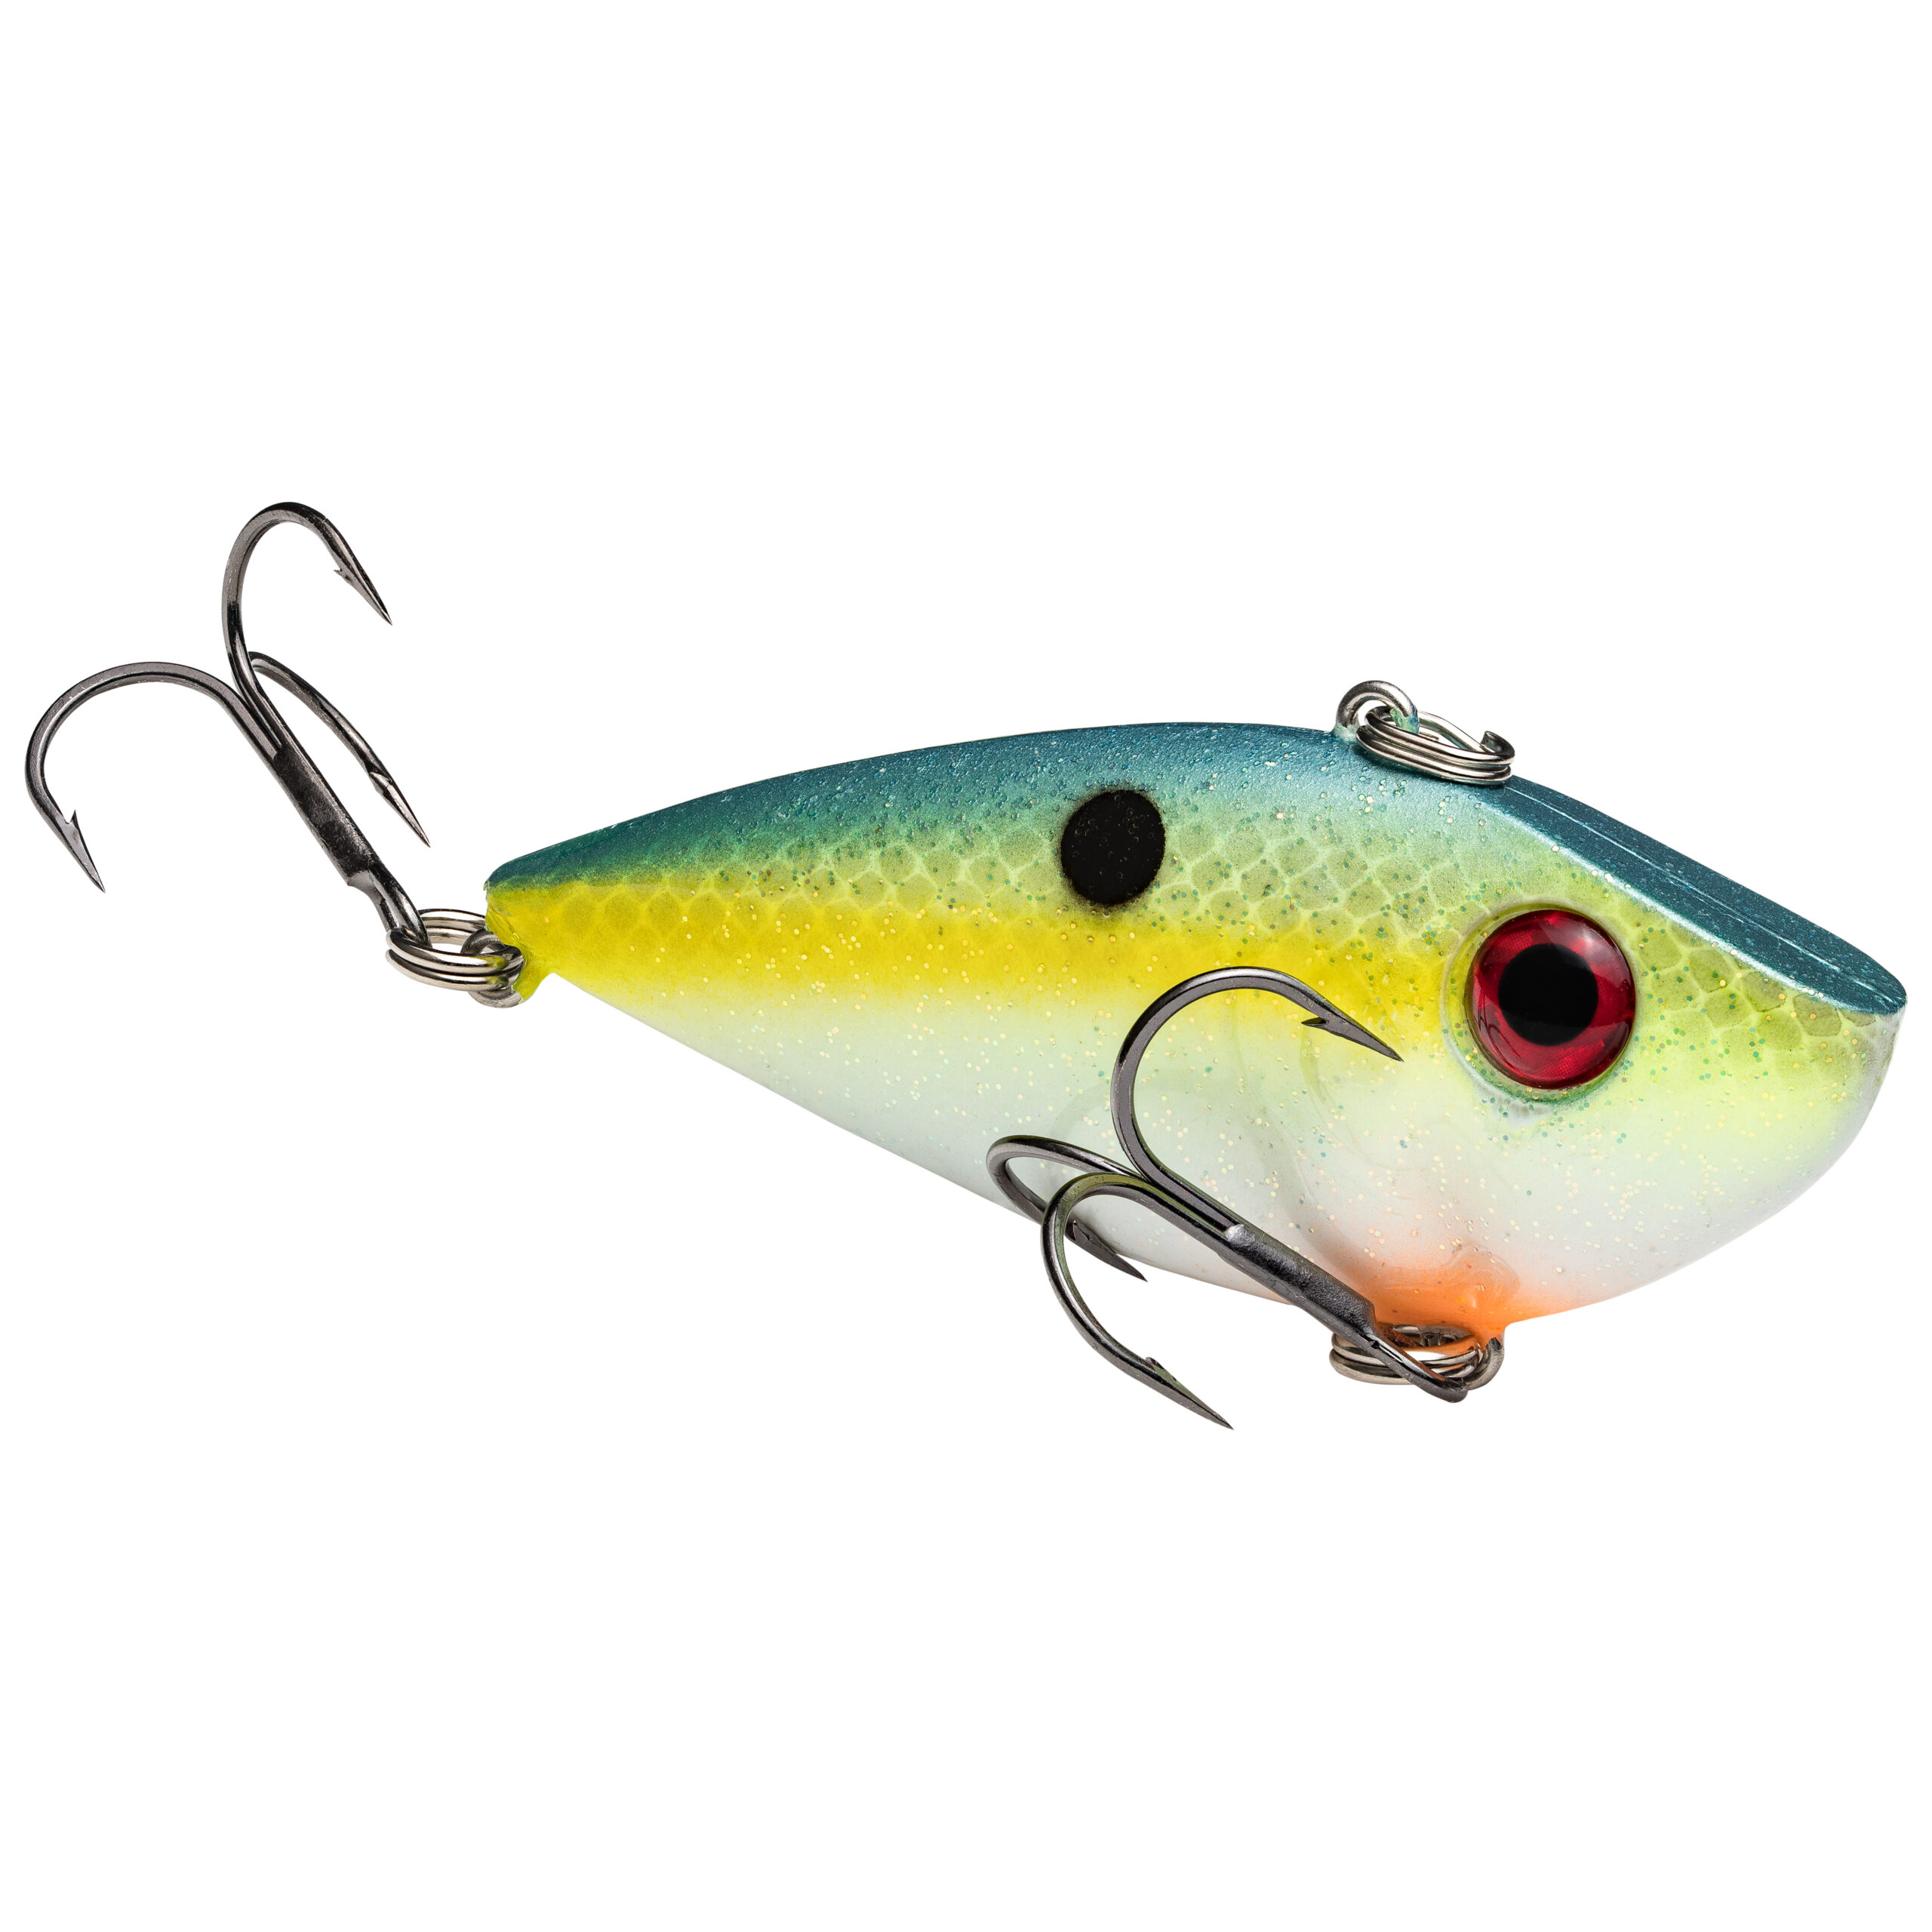 Strike King Lures – Crankbaits – Lipless Rattle Trap – Red Eyed Shad - 1/4oz - REYESD14-538 - Chartreuse Sexy Shad